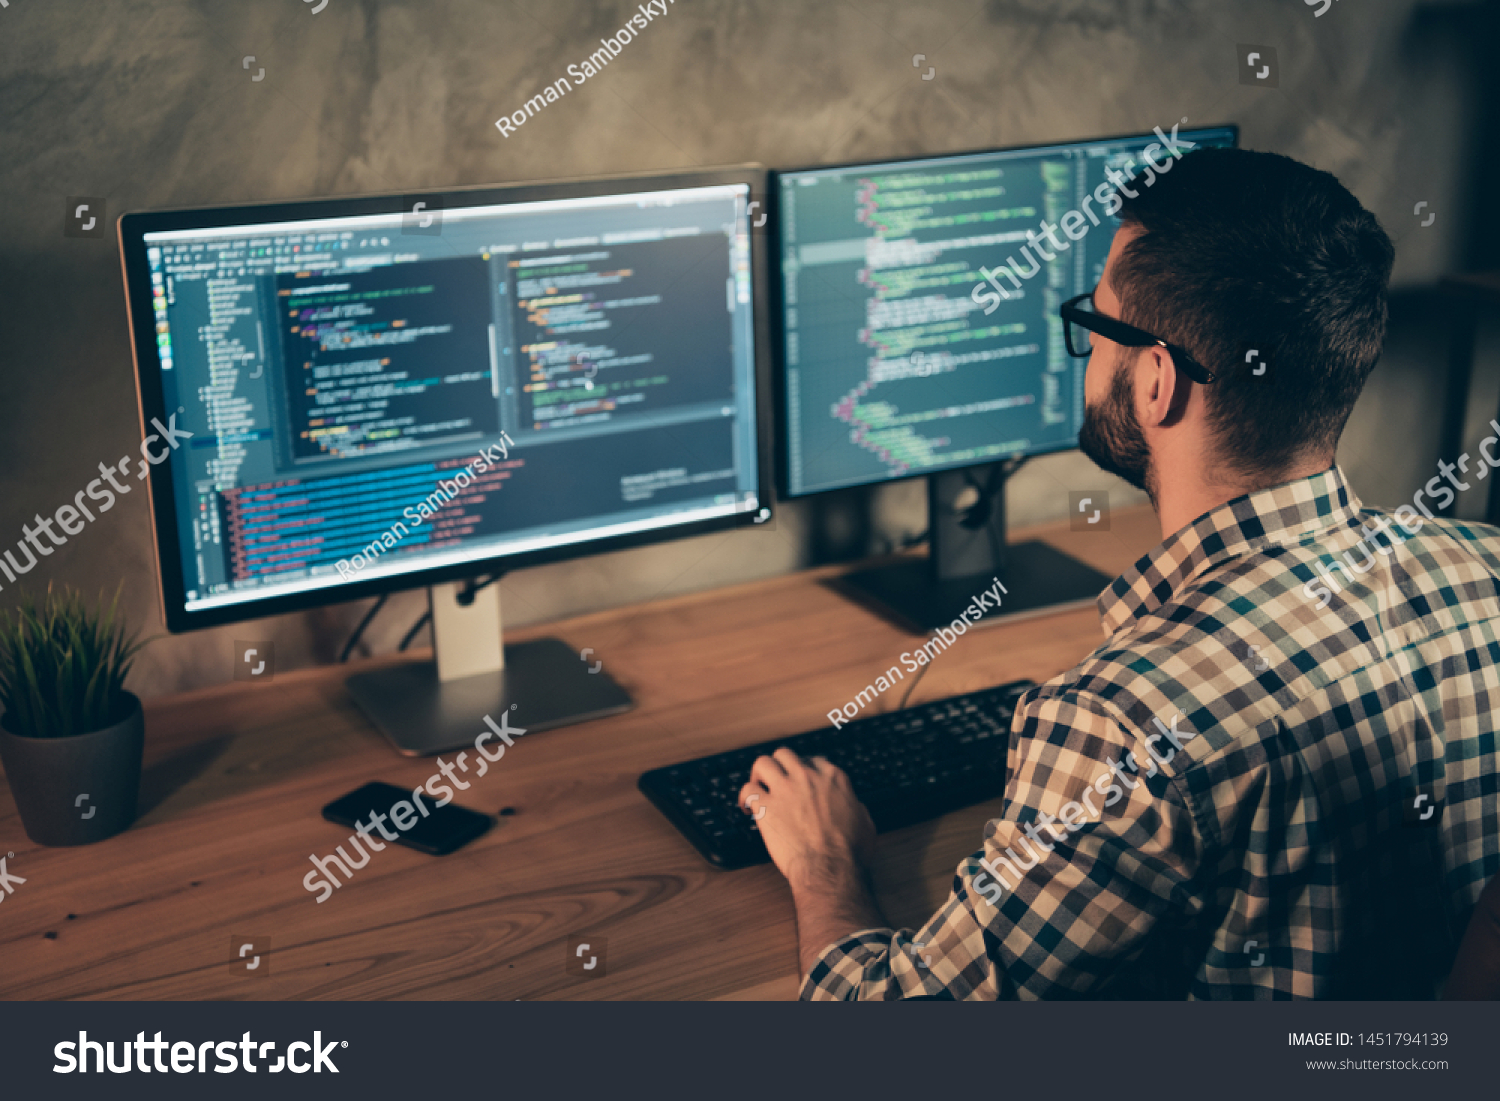 Profile side view of his he nice bearded guy wearing checked shirt professional expert html data base structure screen at wooden industrial interior work place station #1451794139